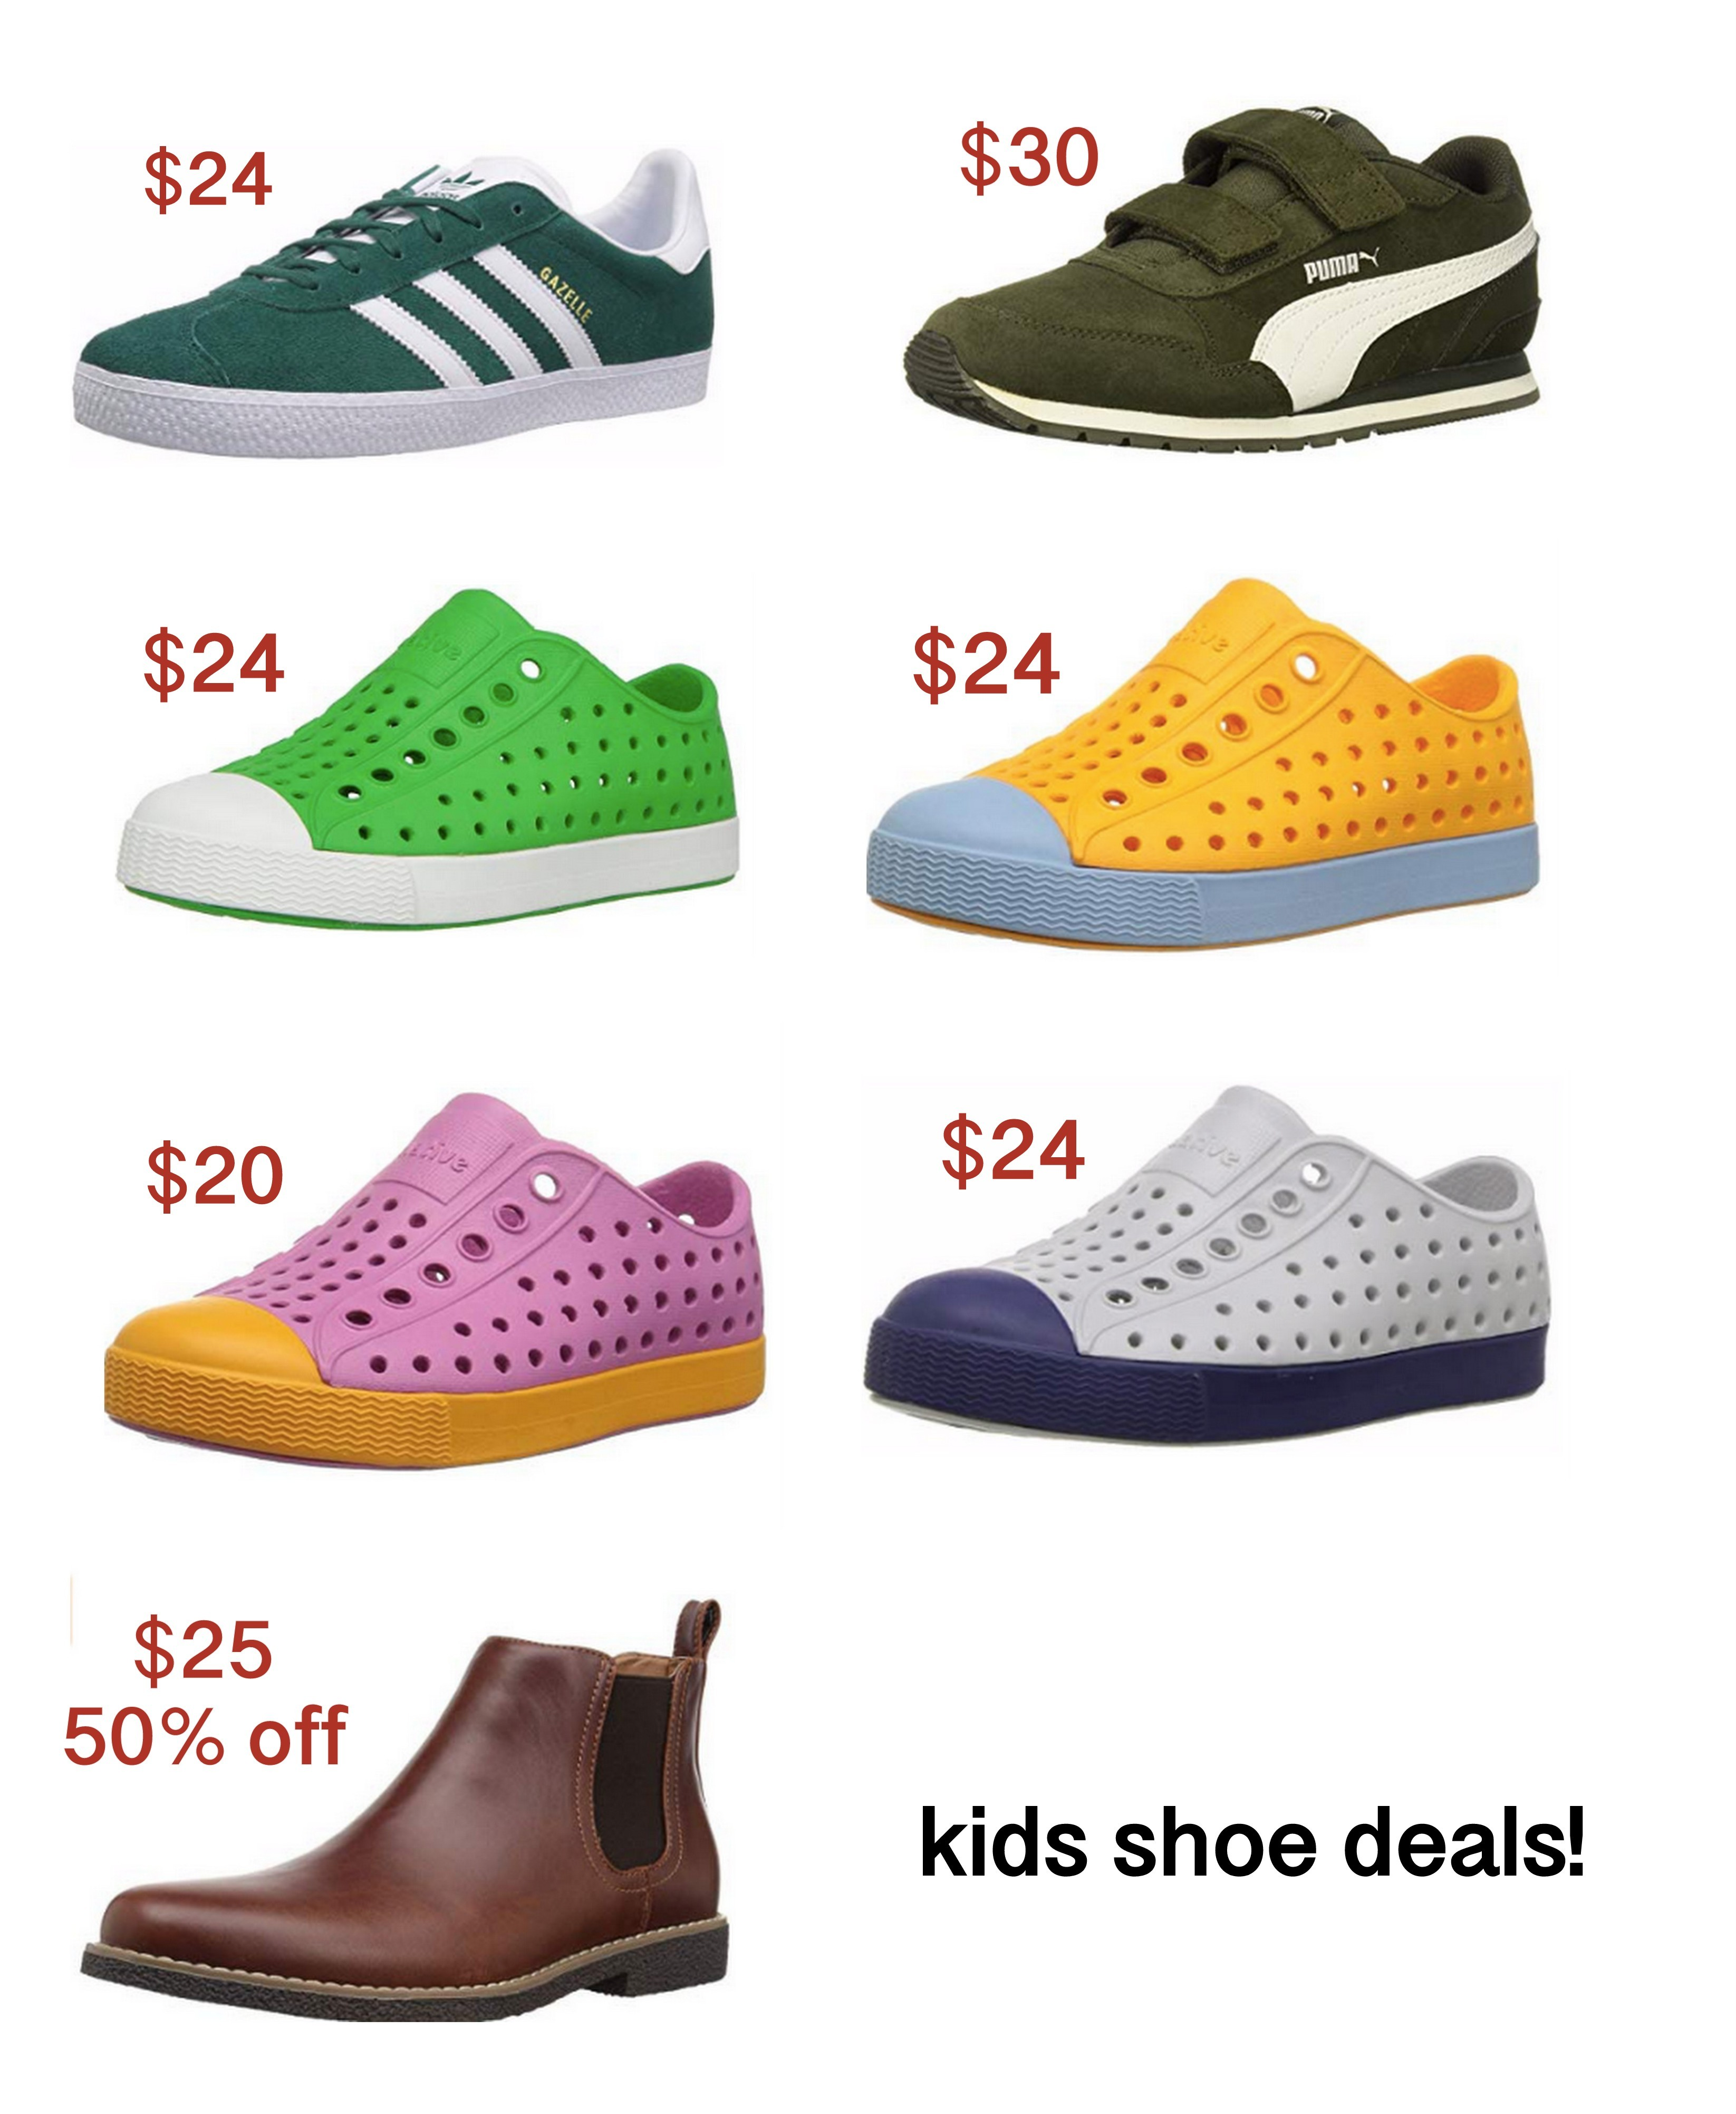 cyber weekend shoe deals